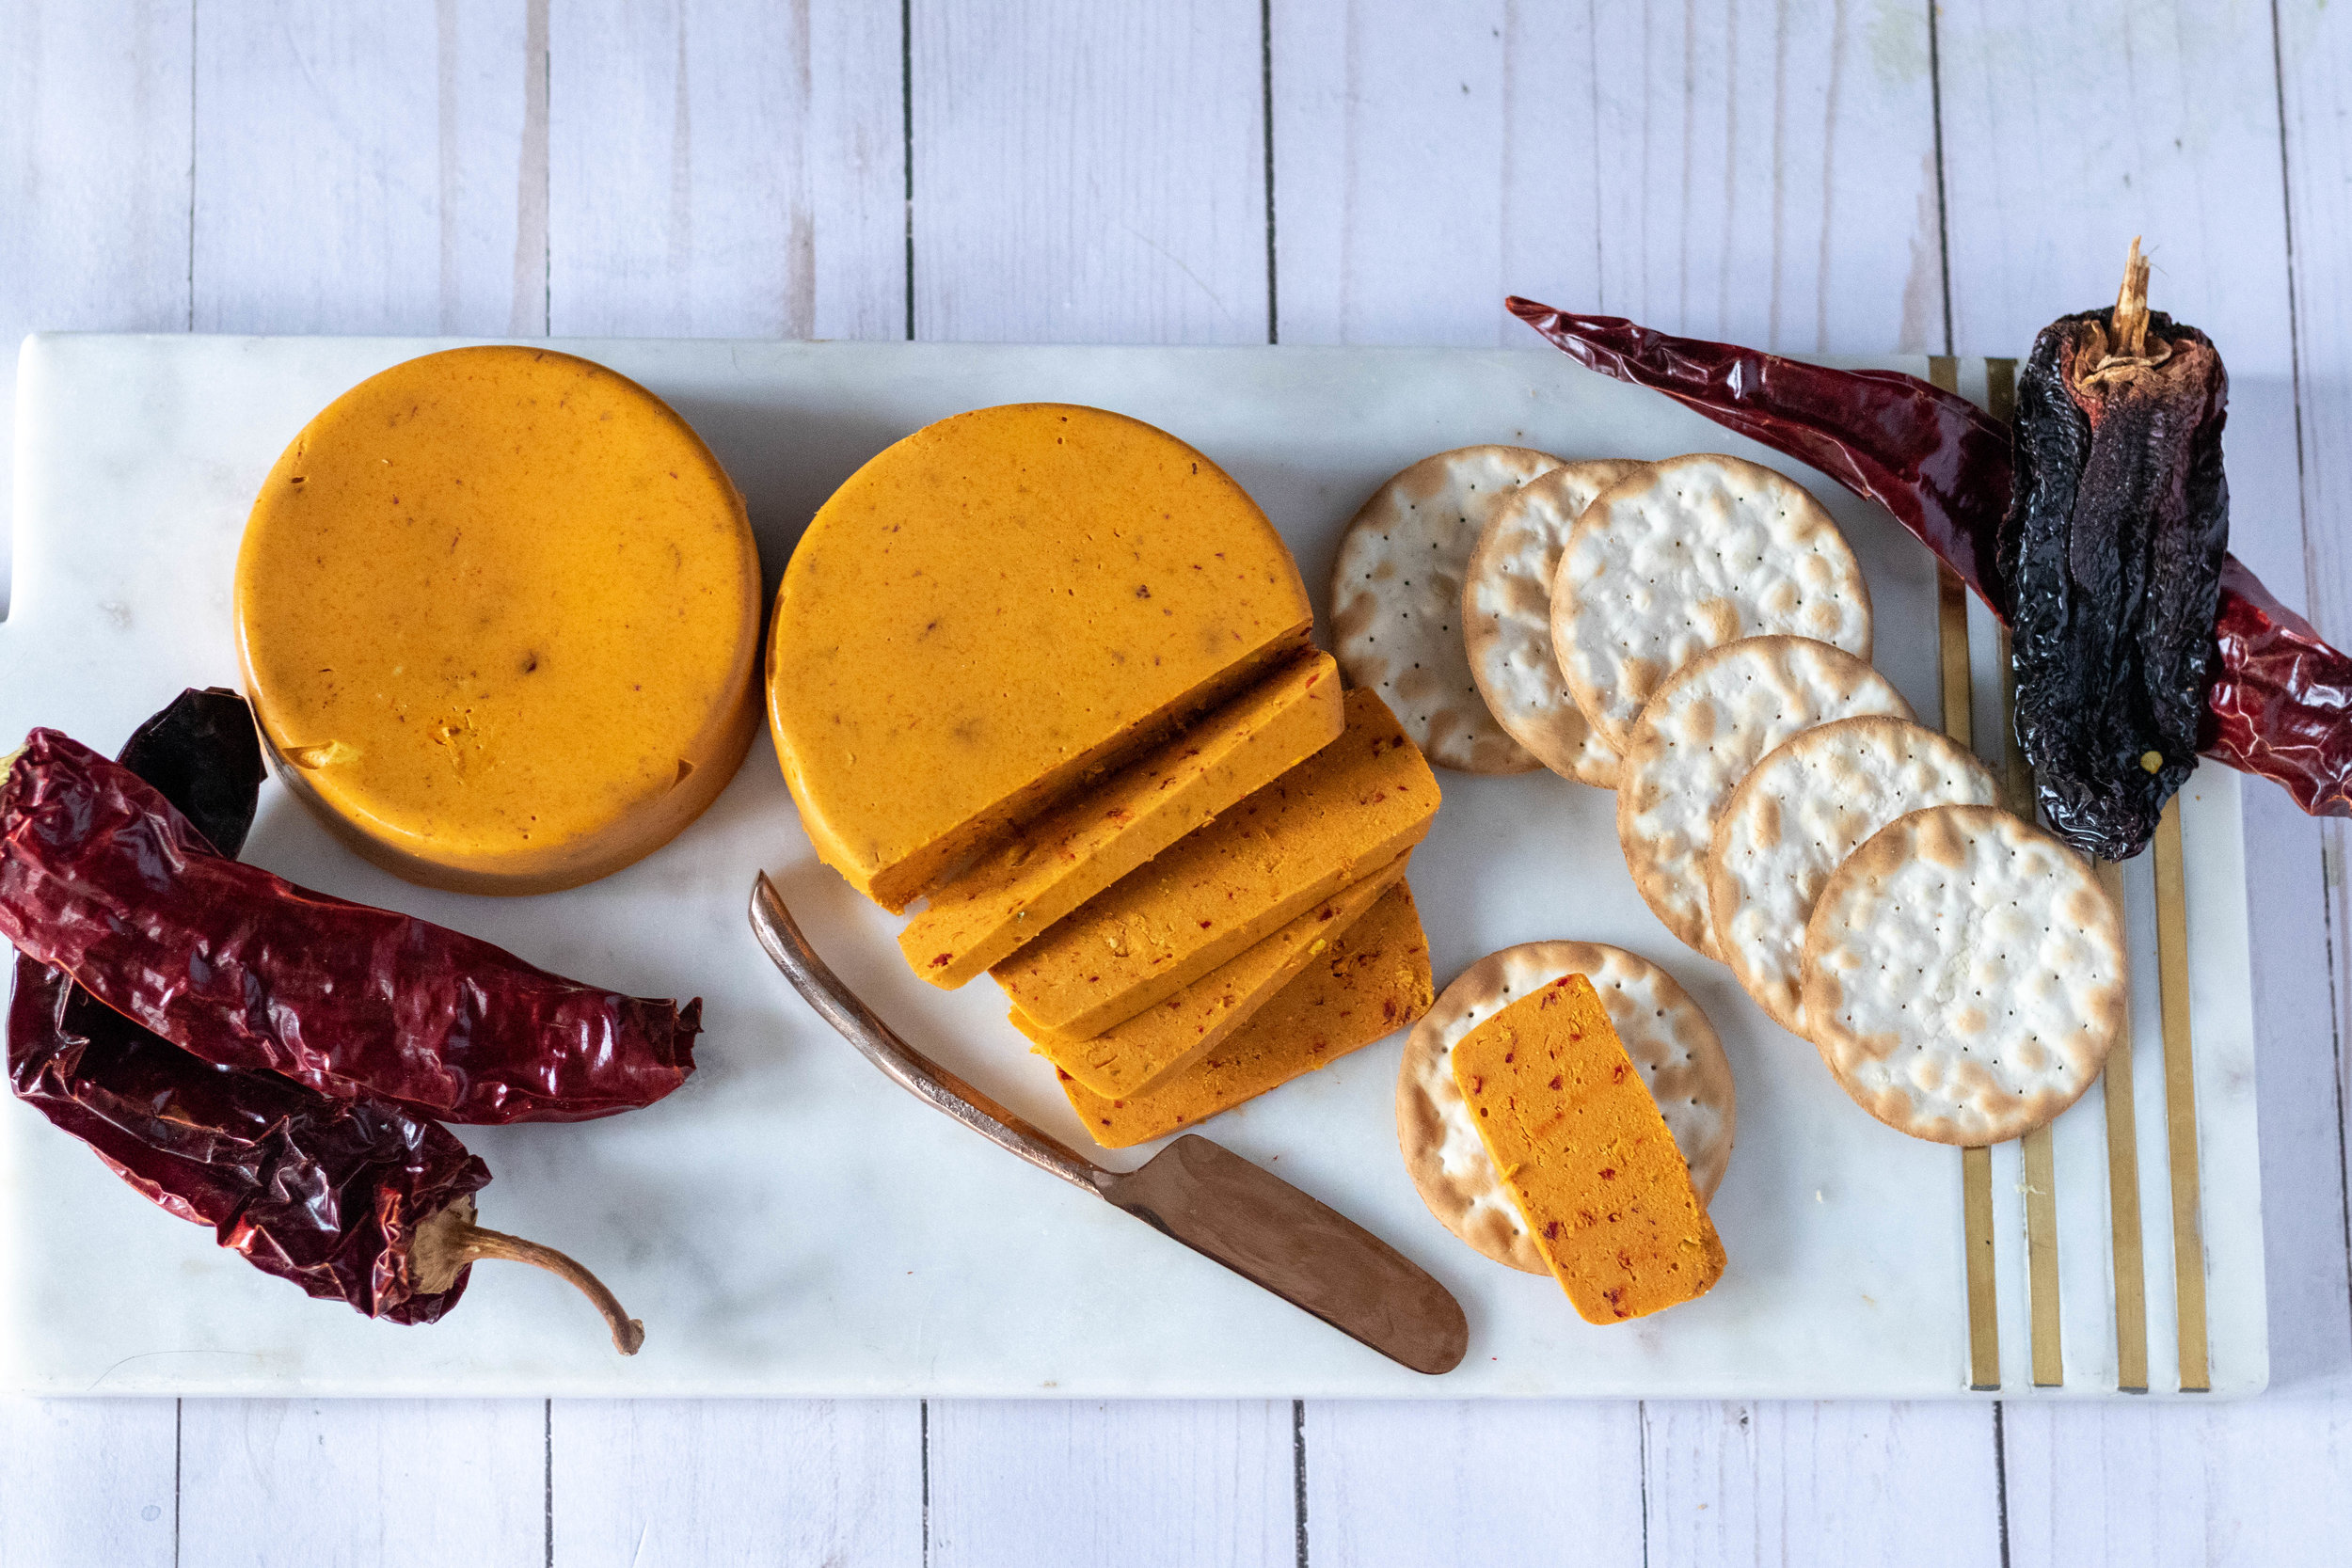 A cheese board with vegan coconut chile cheddar cheese surrounded by chiles and crackers